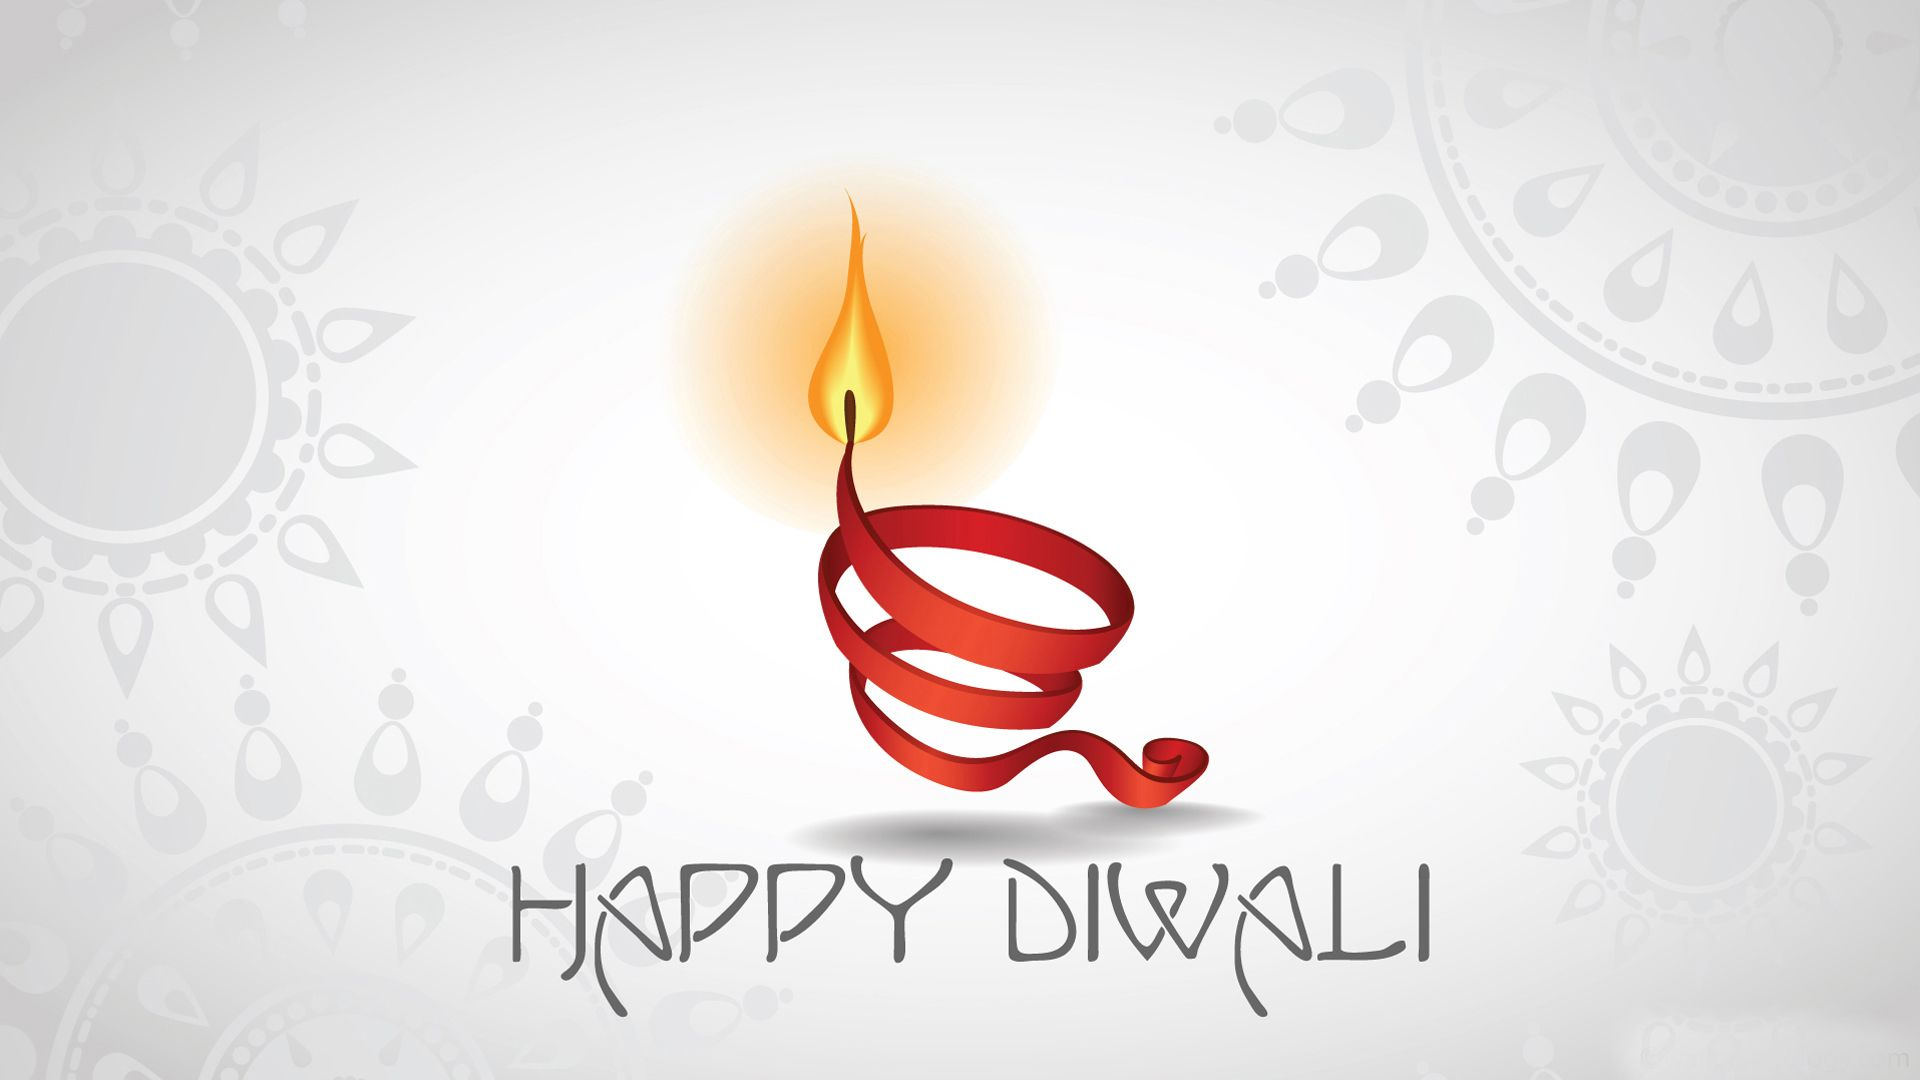 Happy diwali 2015 download free wallpapers and greeting cards http happy diwali 2015 download free wallpapers and greeting cards http m4hsunfo